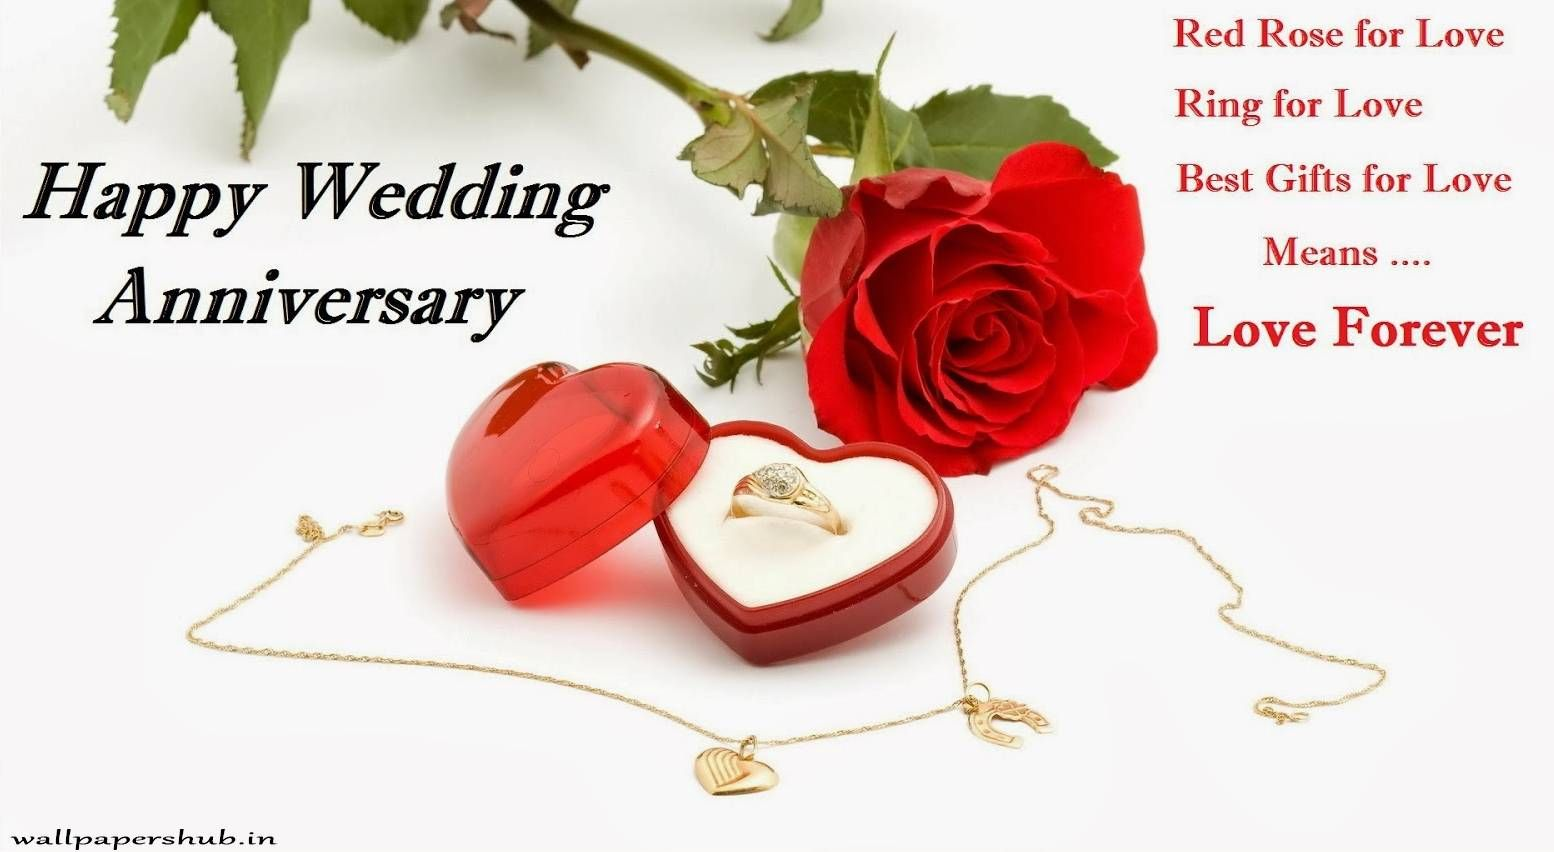 Rose ring anniversary | Messages (Anniversary) | Pinterest